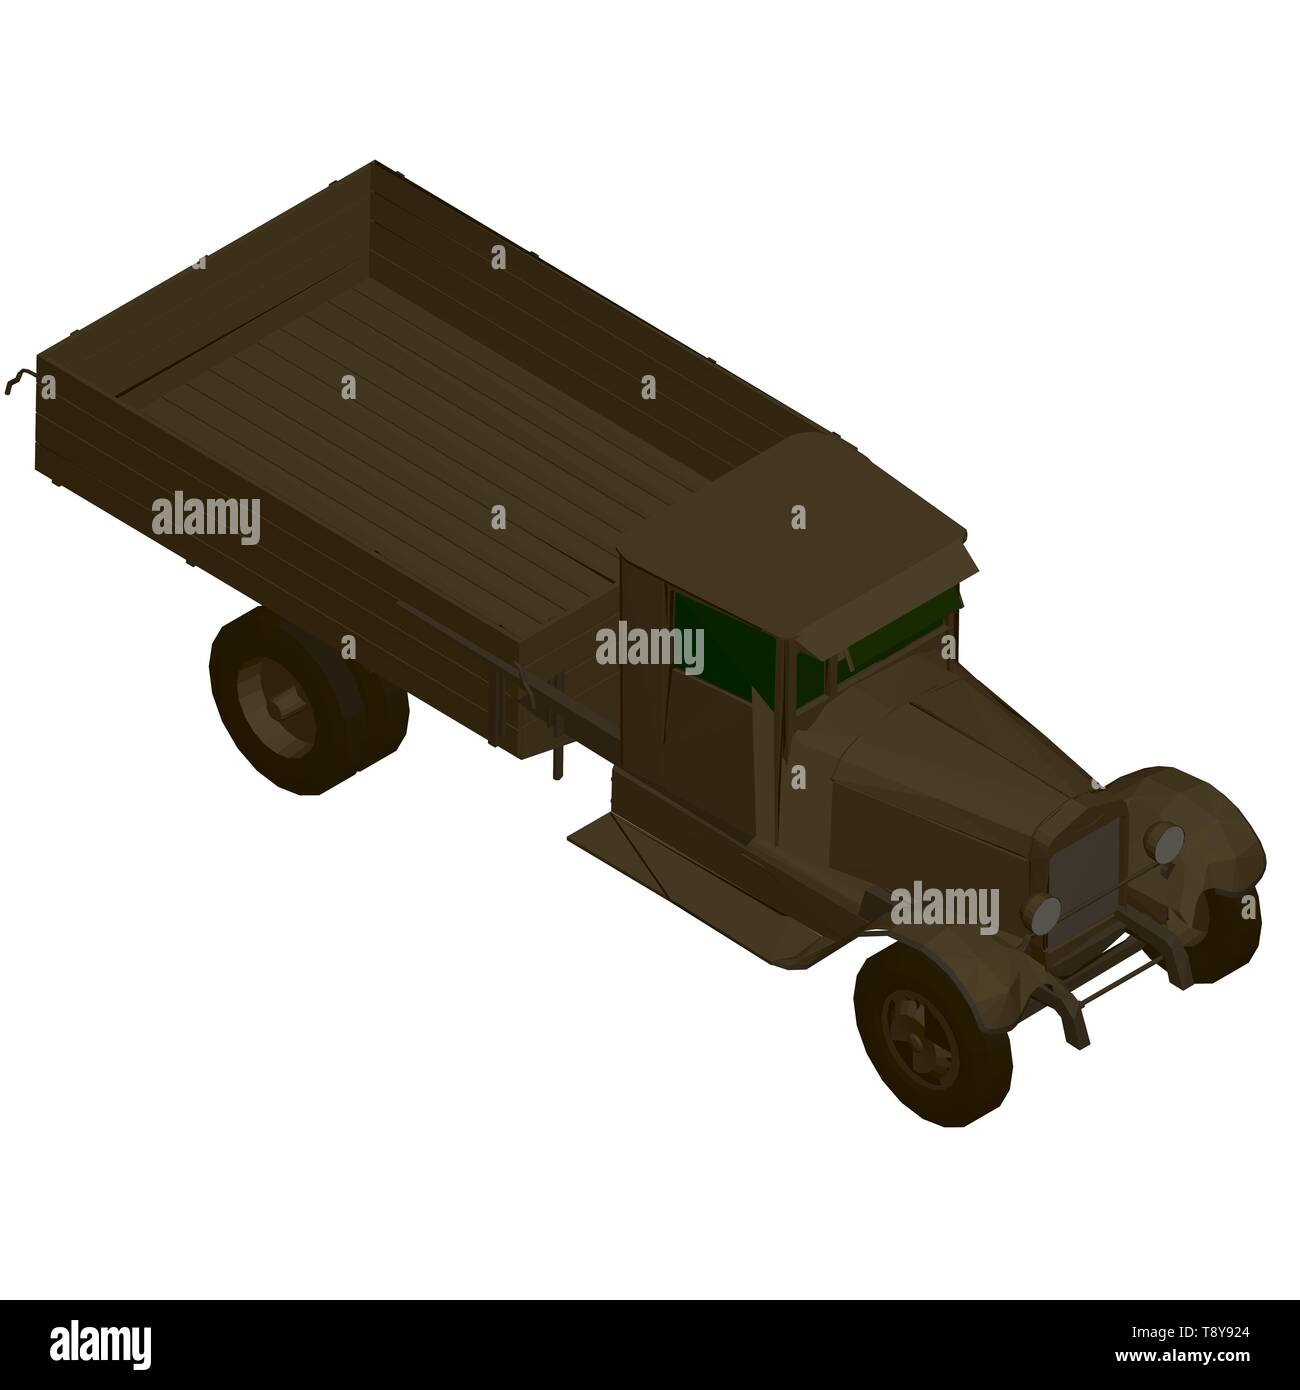 Vector illustration of a vintage truck in brown. 3D. Isometric view - Stock Vector